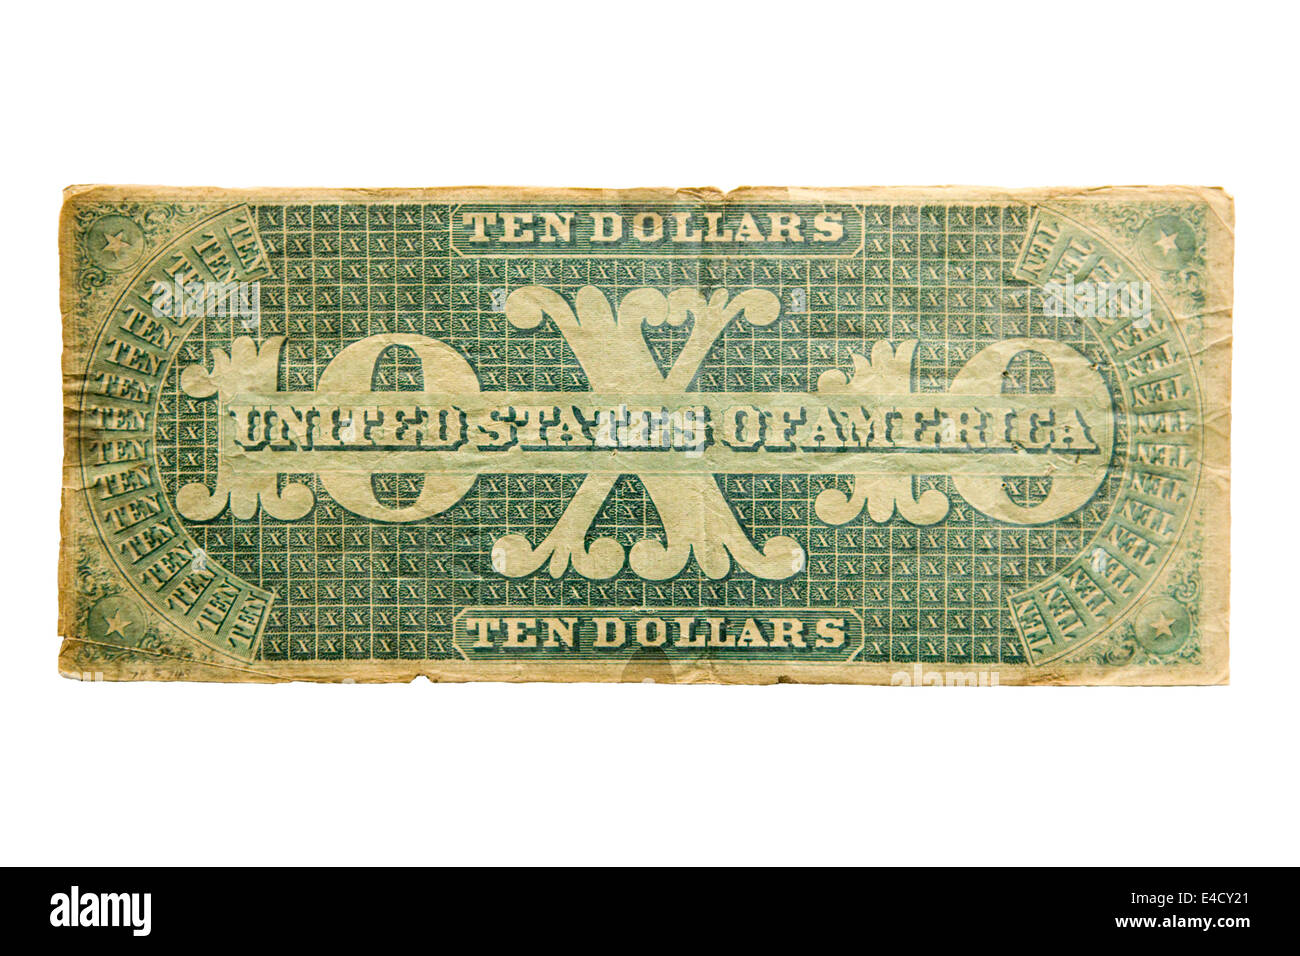 Reverse view of rare 1861 $10 US banknote cutout - Stock Image